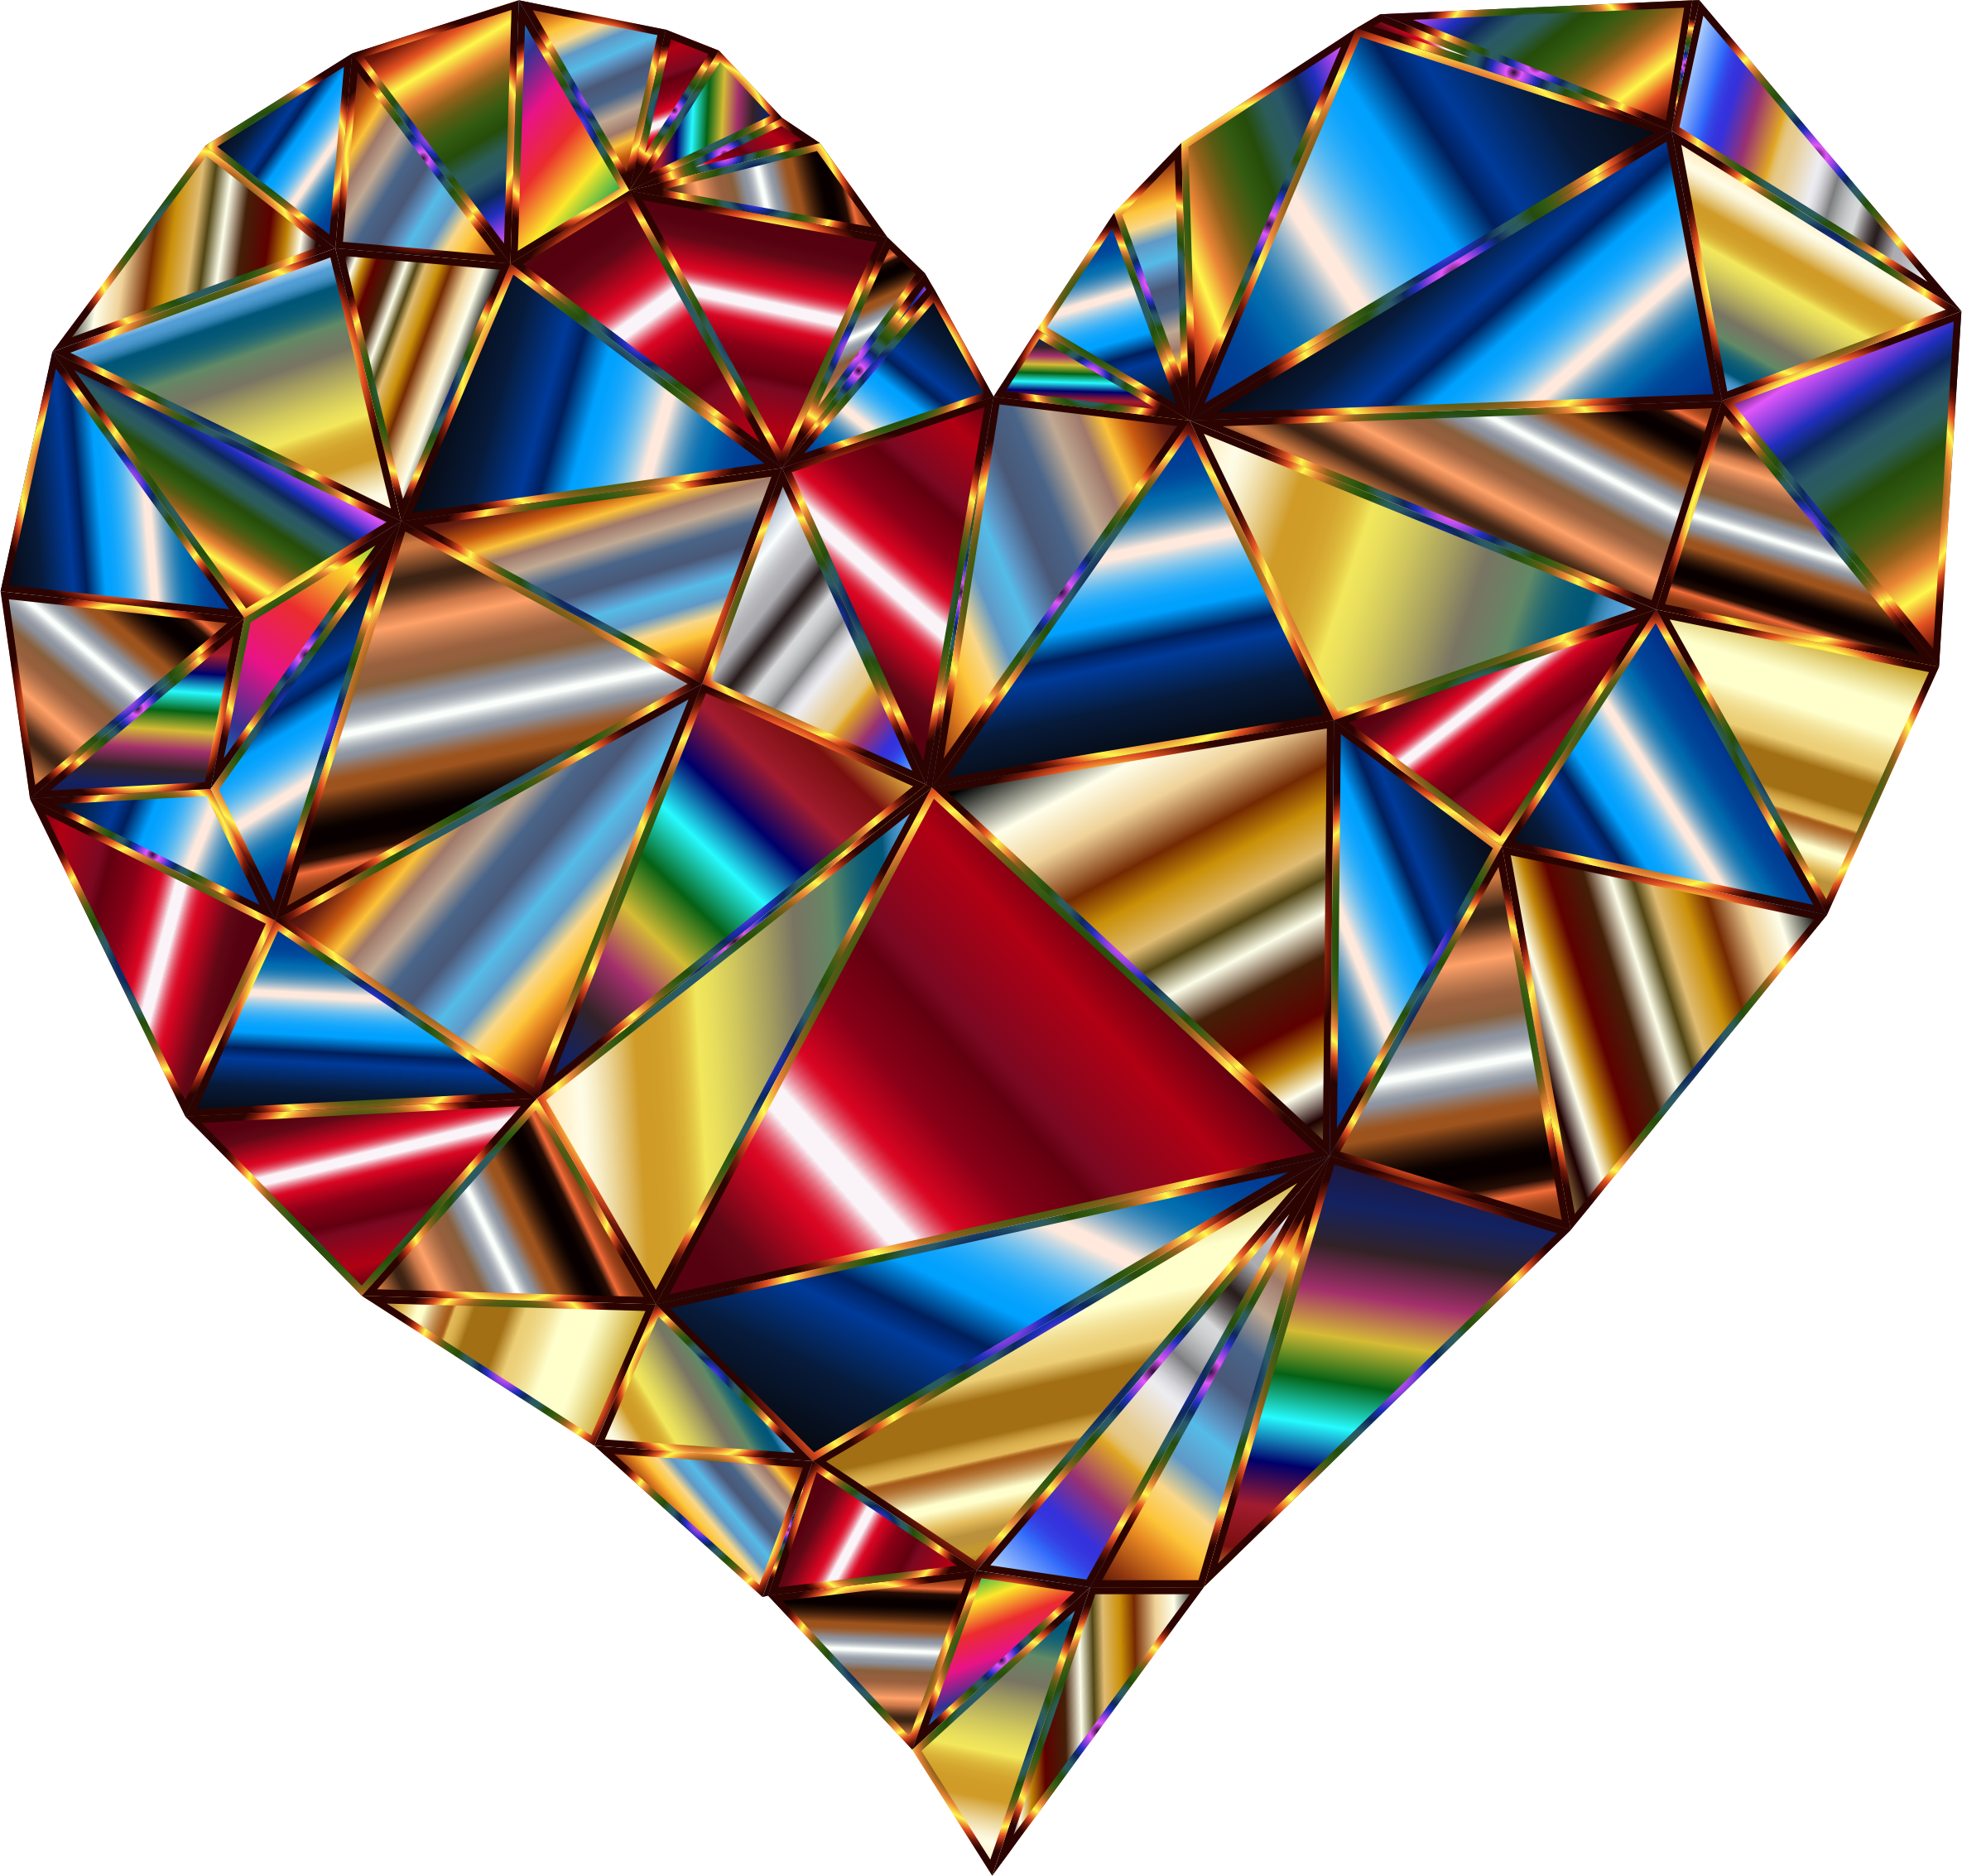 Polychromatic Low Poly Heart 3 by GDJ